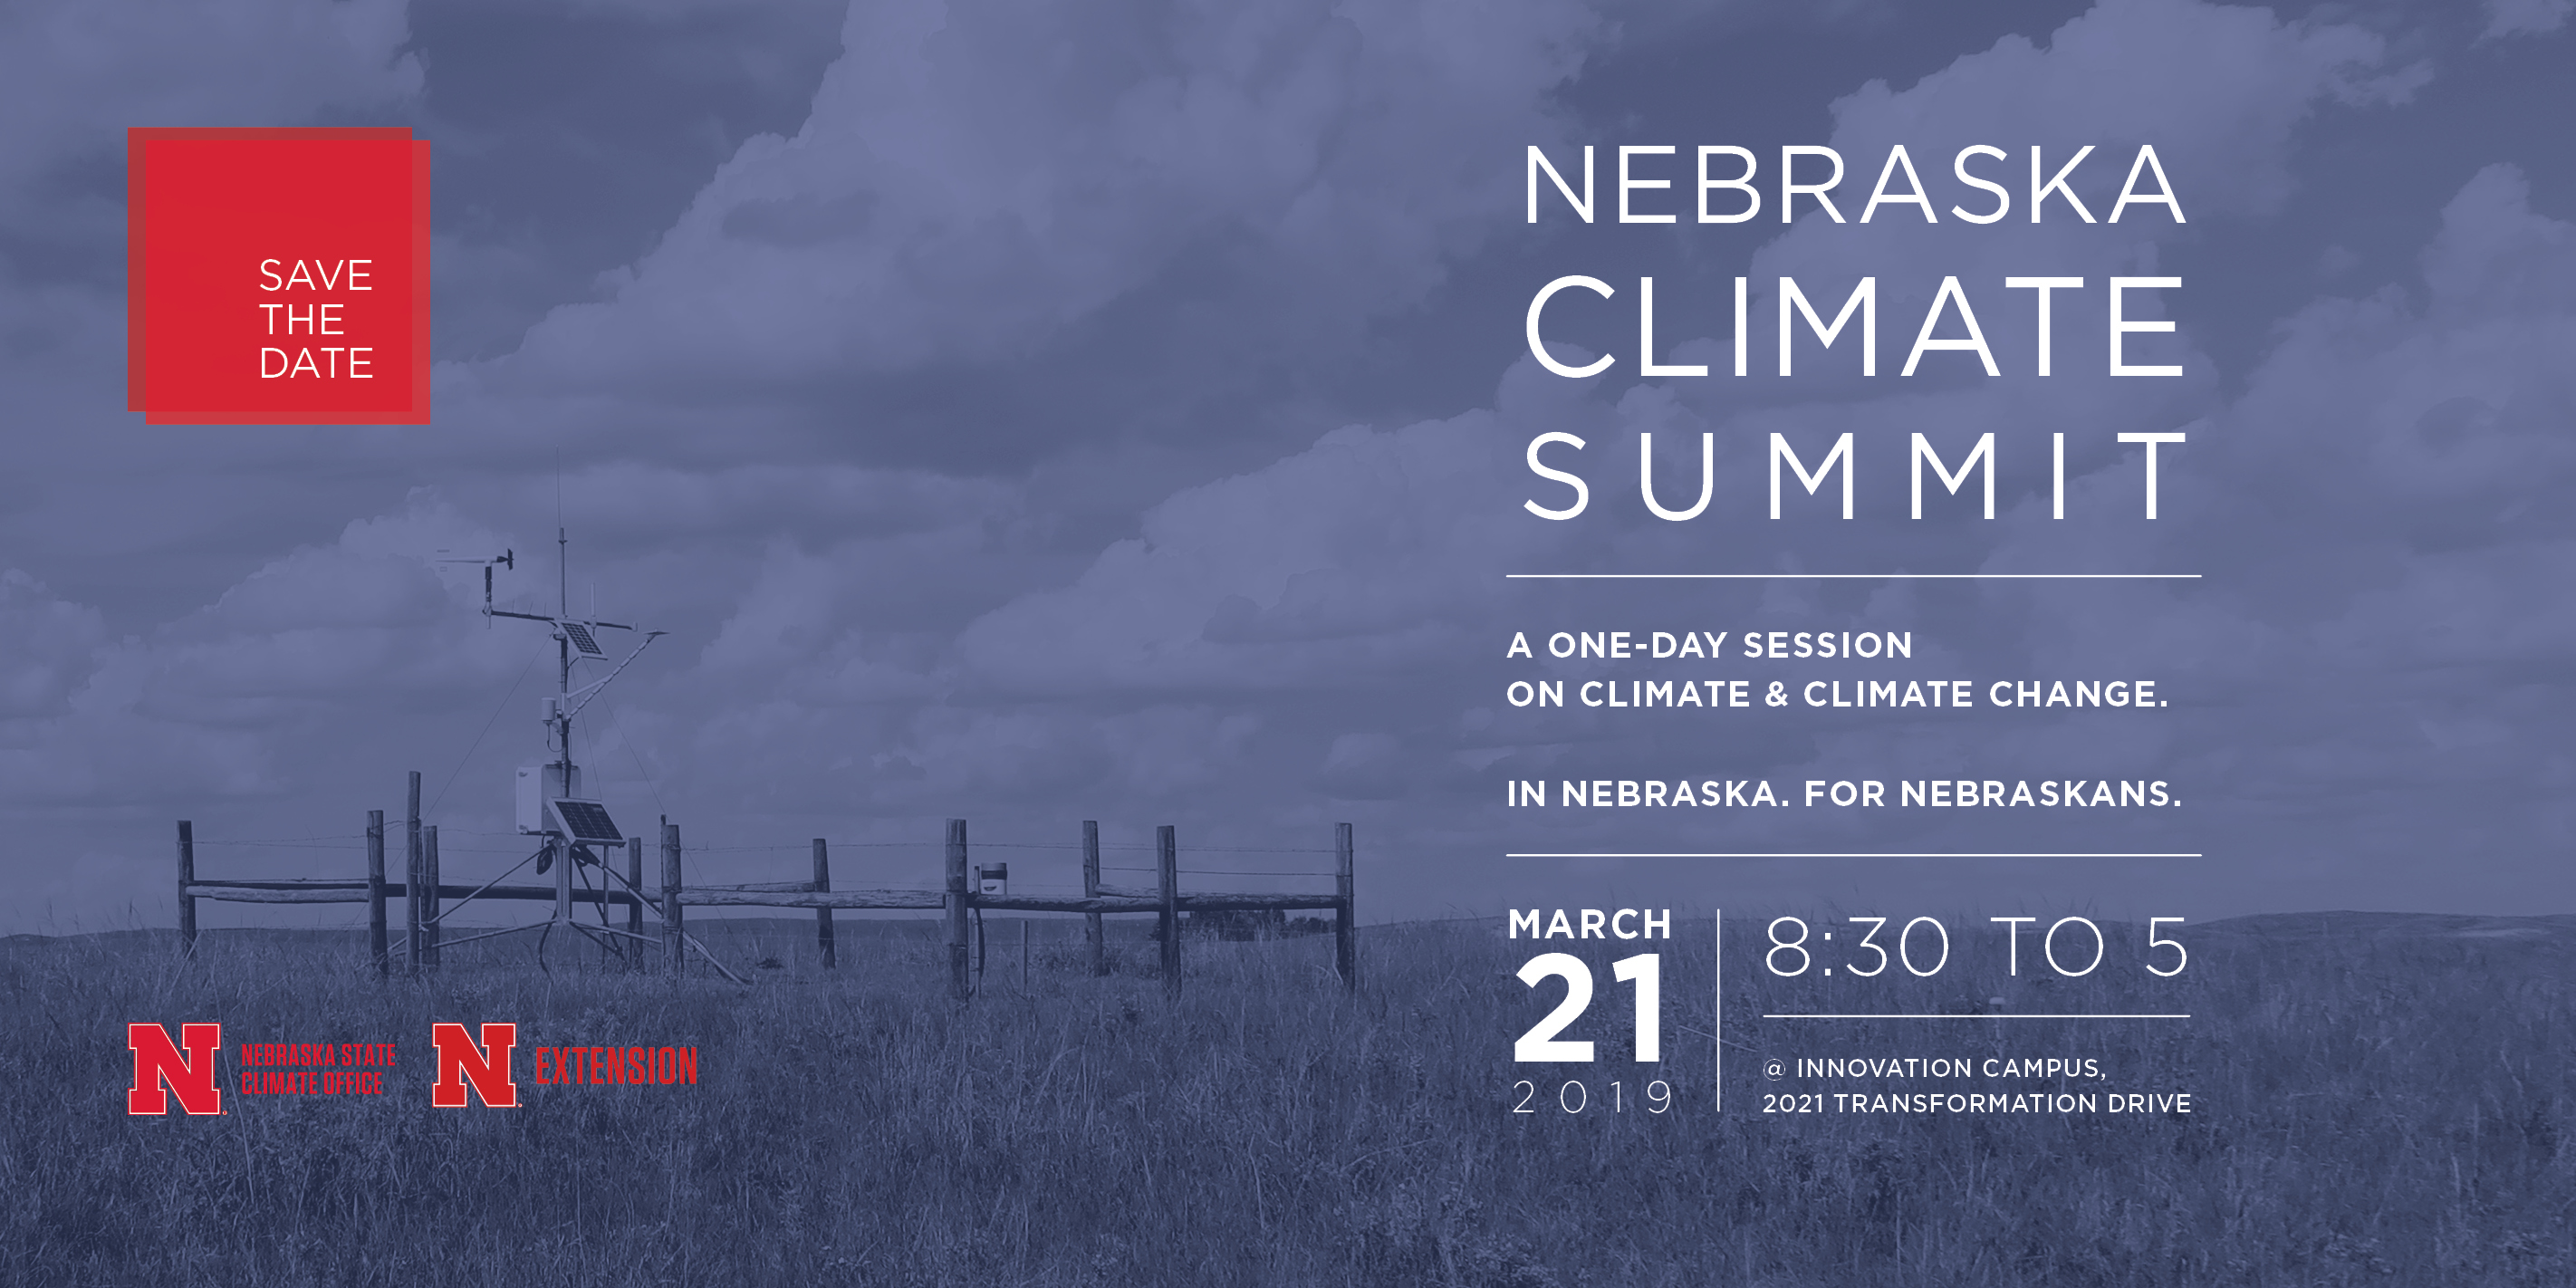 The Nebraska Climate Summit is planned for March 21 at Nebraska Innovation Campus.